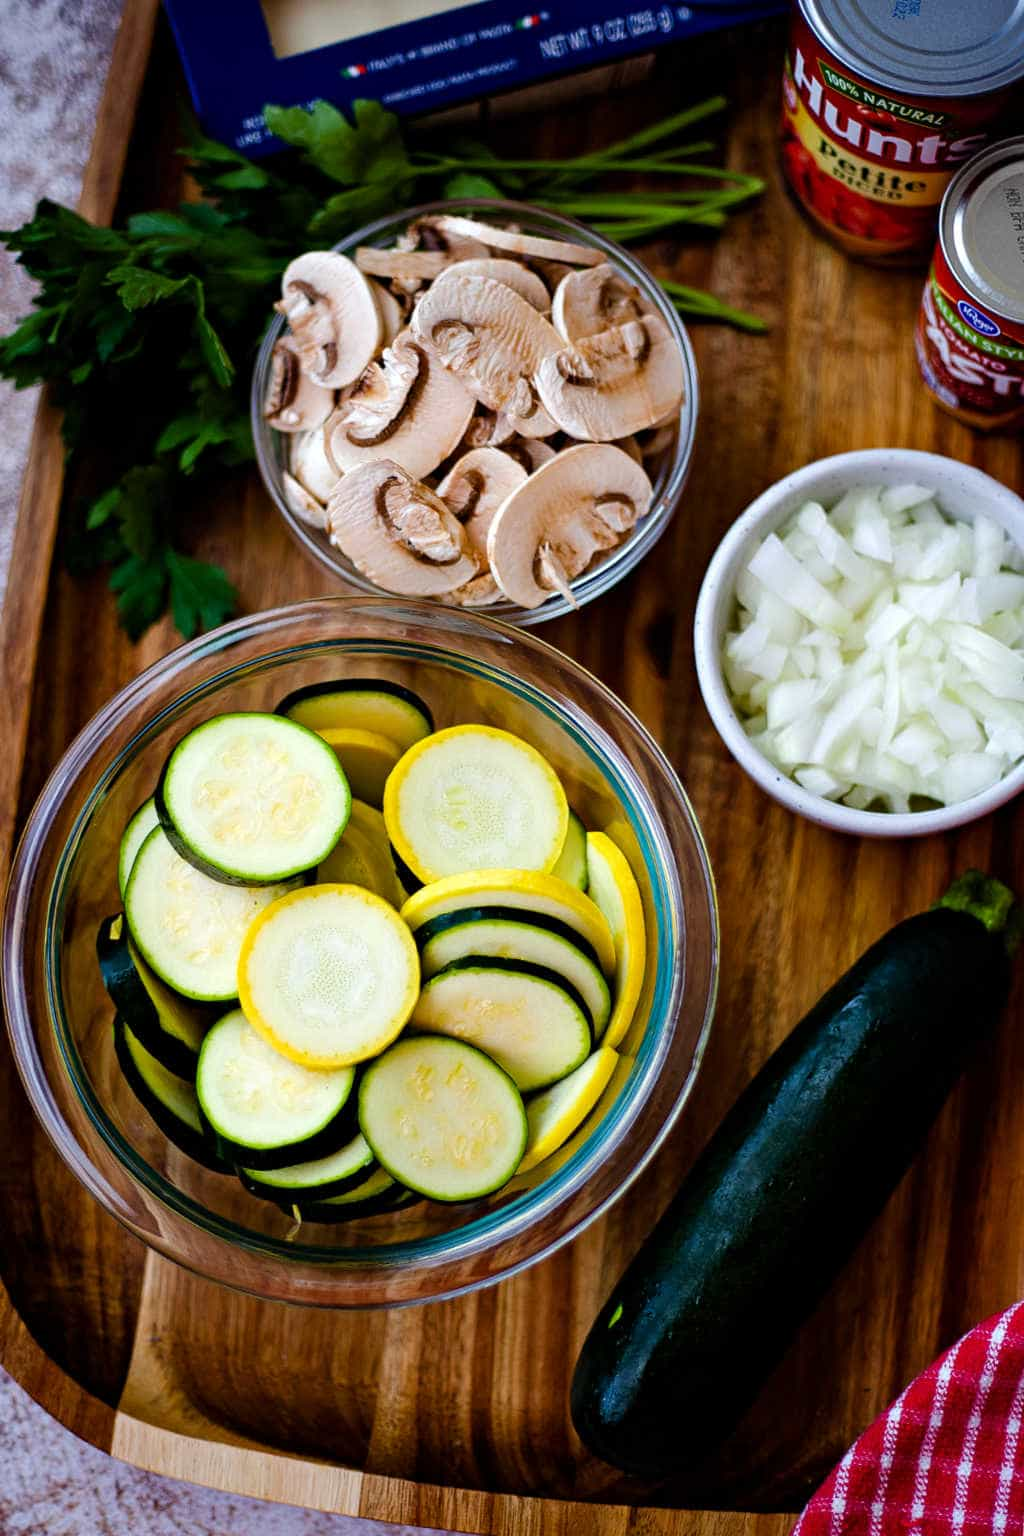 ingredients for Skillet Lasagna with Squash and Mushrooms